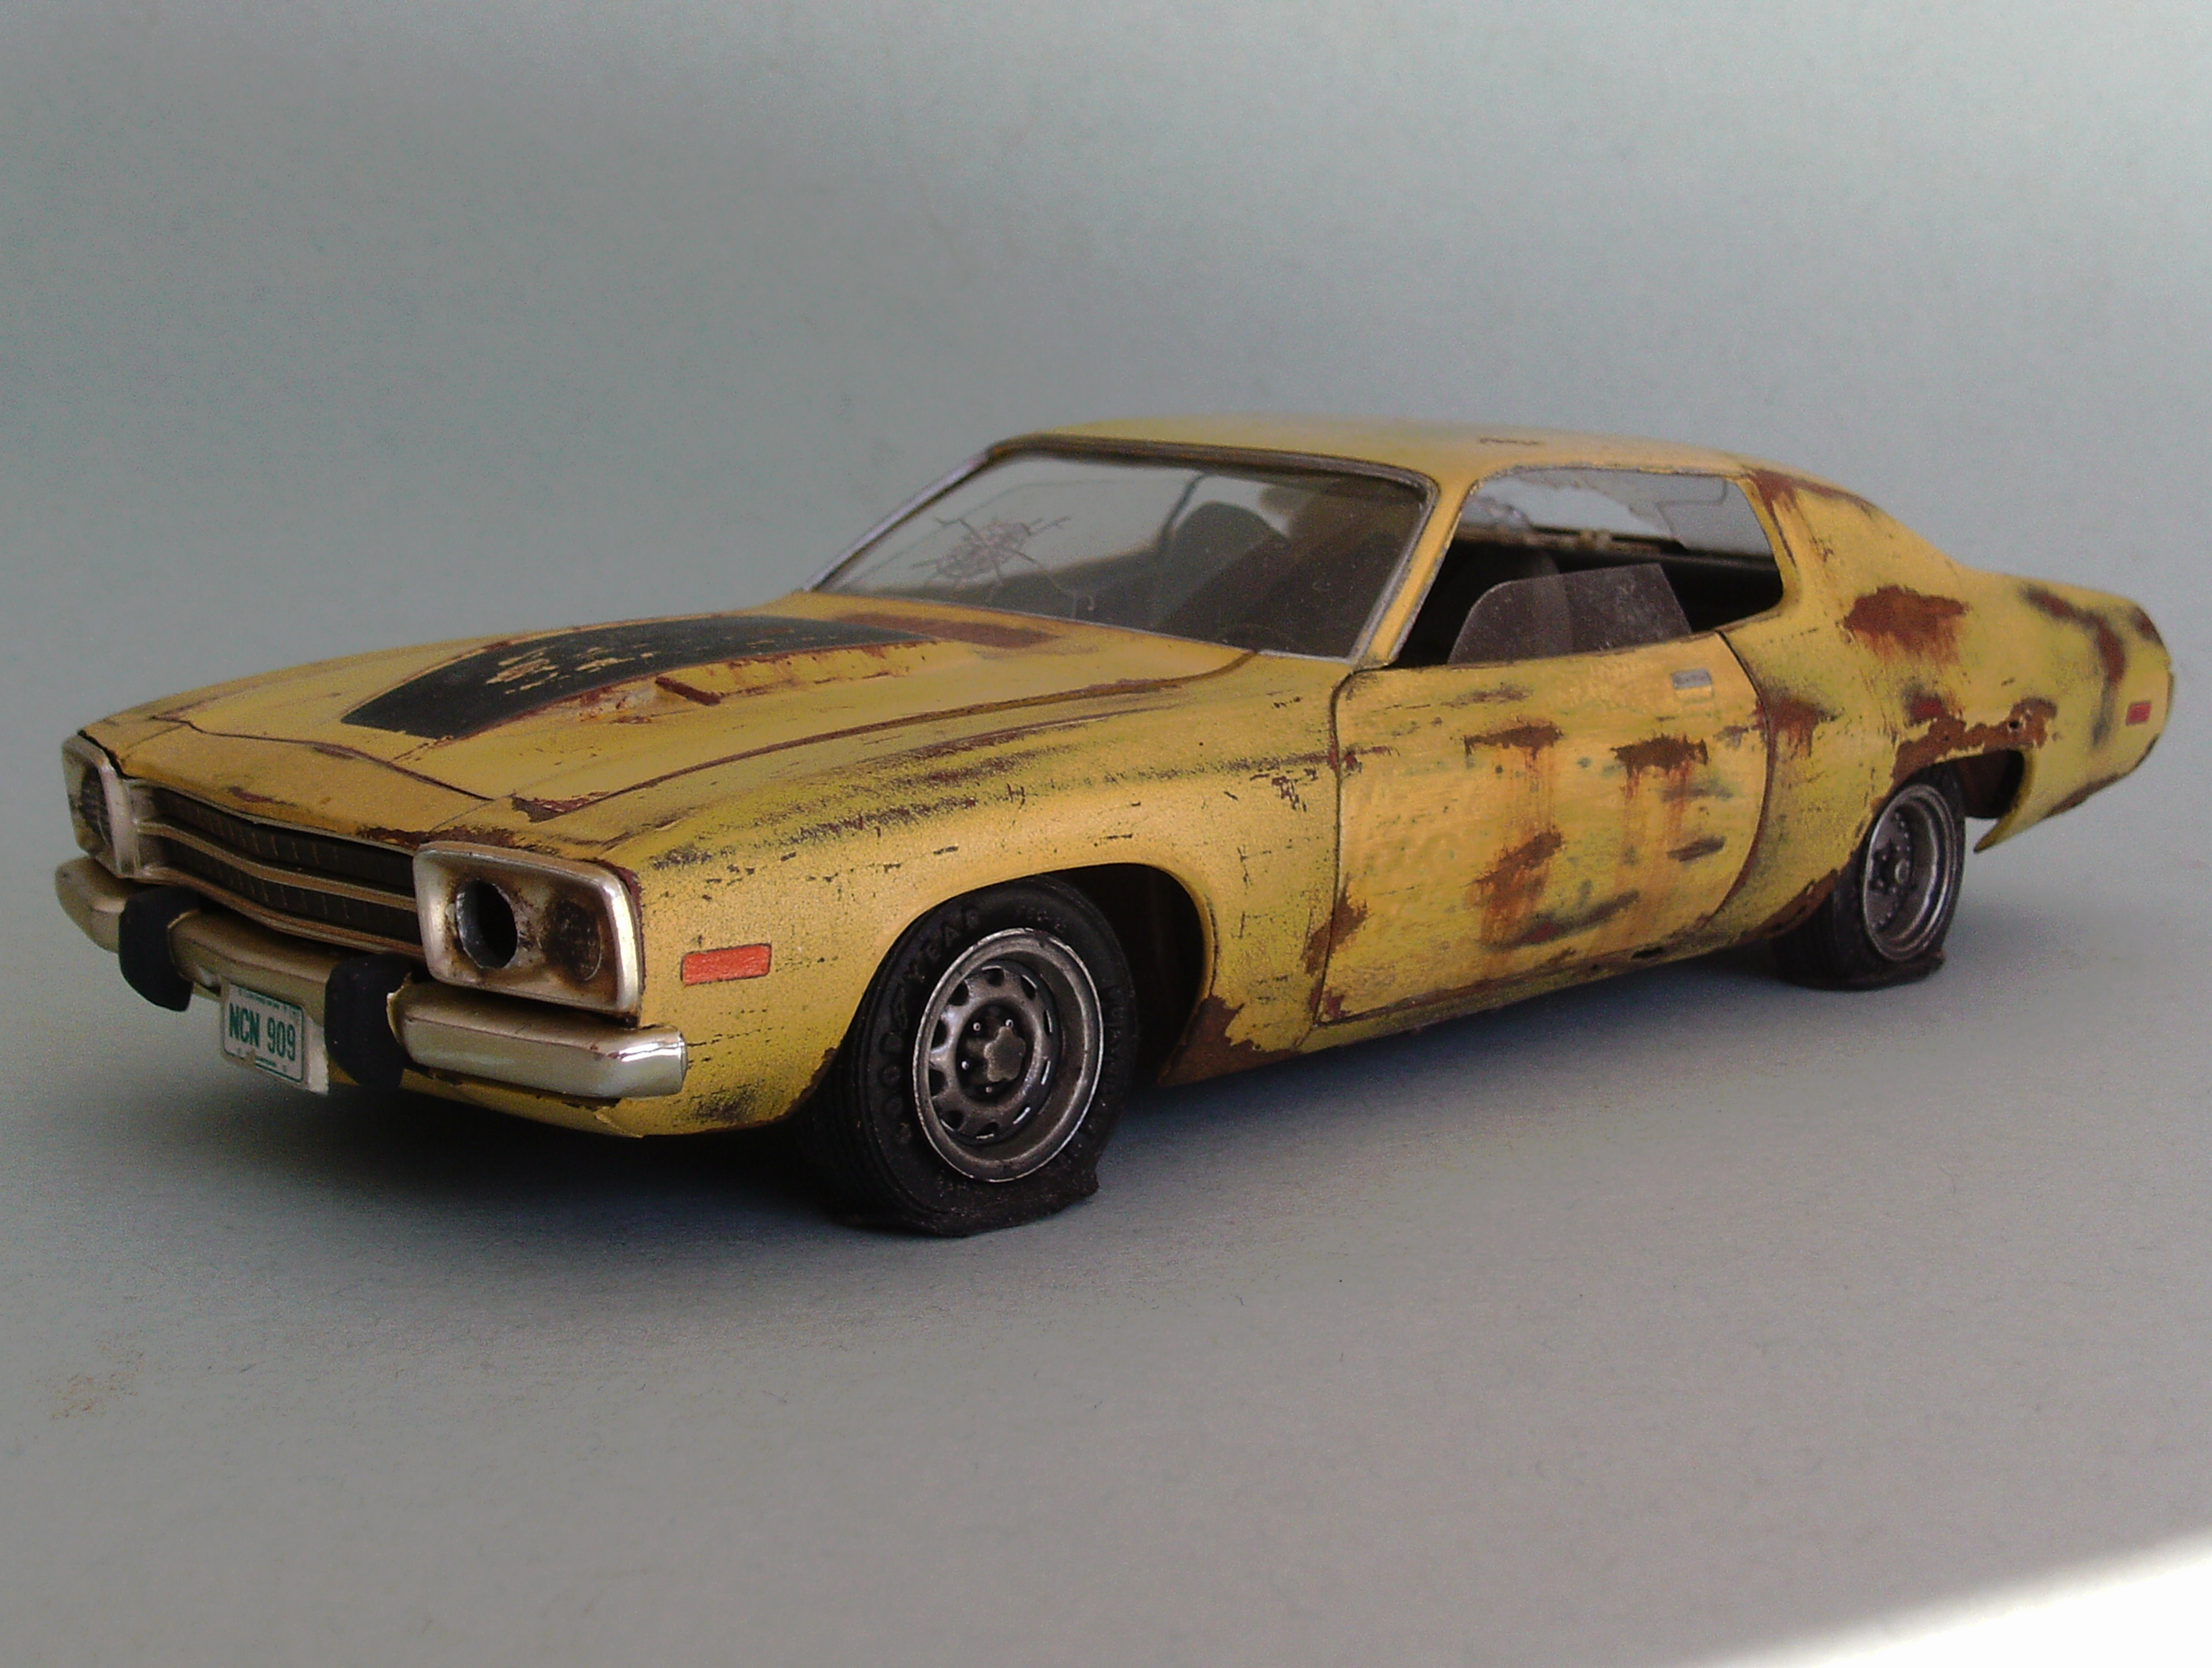 1974 Plymouth junker - Under Glass - Model Cars Magazine Forum